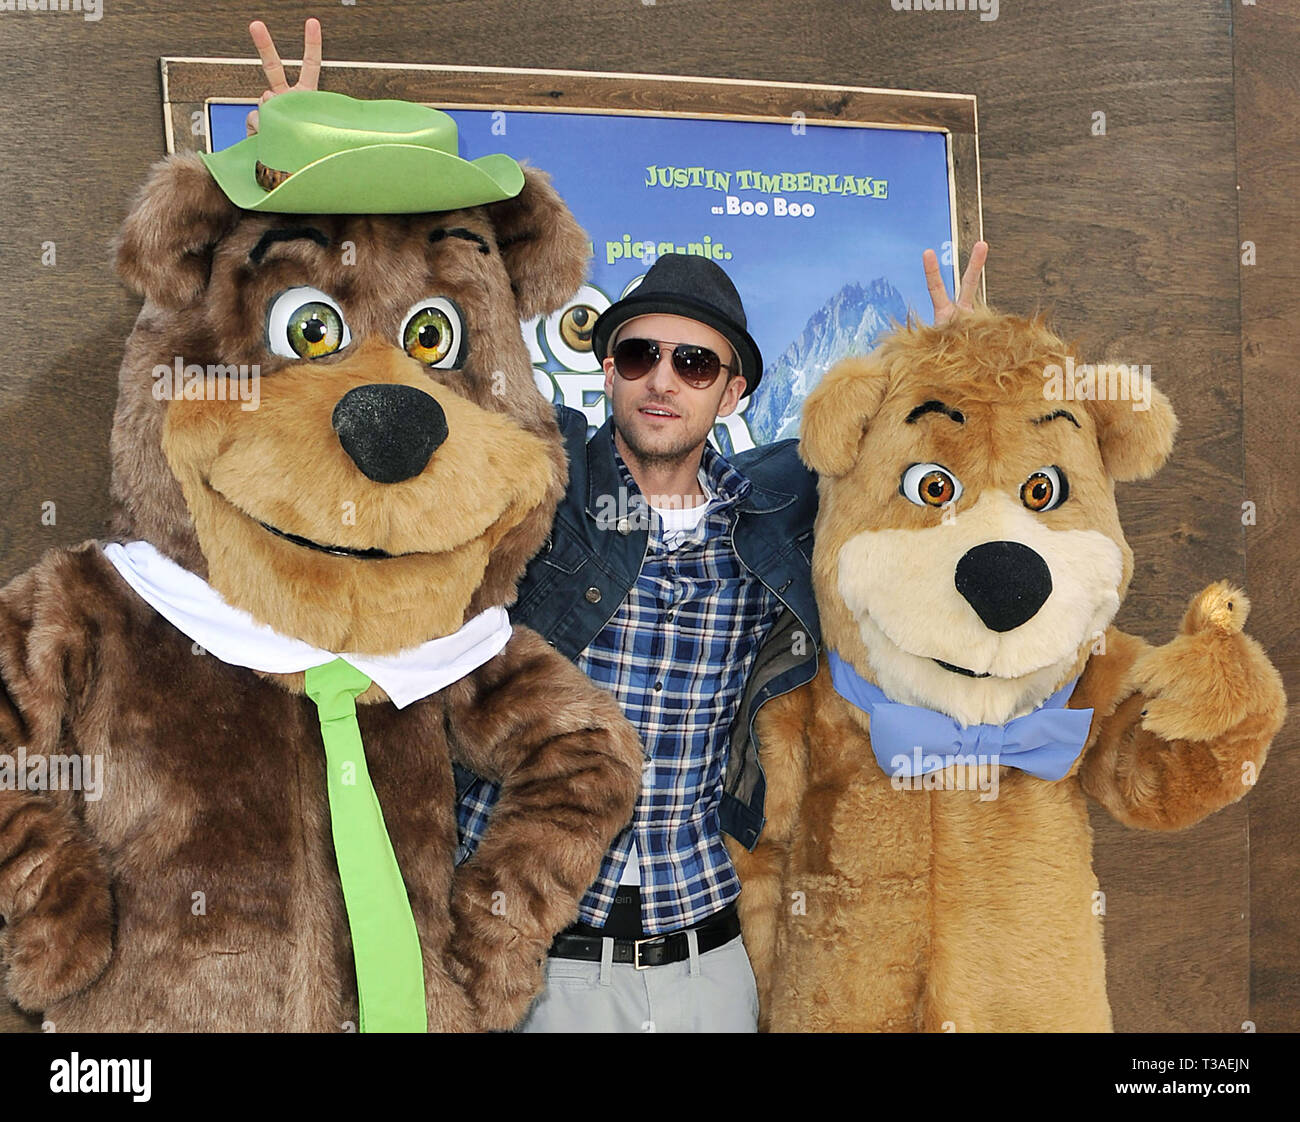 Justin Timberlake Yogi Bear Premiere At The Westwood Village Theatre In Los Angeles A Justin Timberlake 01 Event In Hollywood Life California Red Carpet Event Usa Film Industry Celebrities Photography Bestof